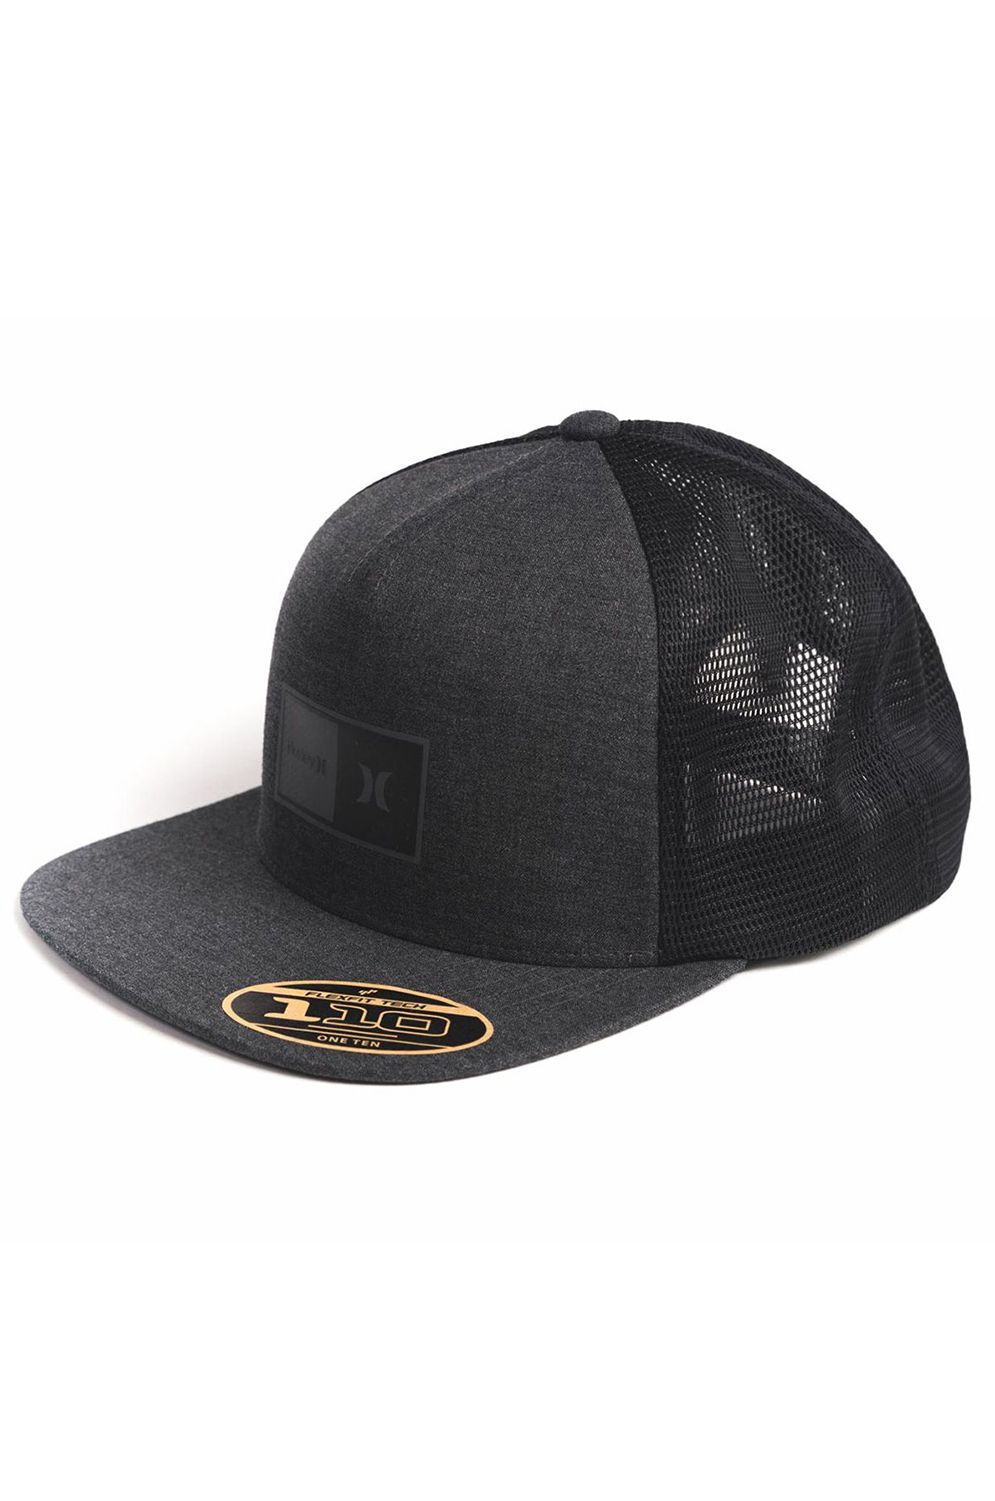 Bone Hurley M NATURAL 2.0 TRUCKER HAT Black Htr